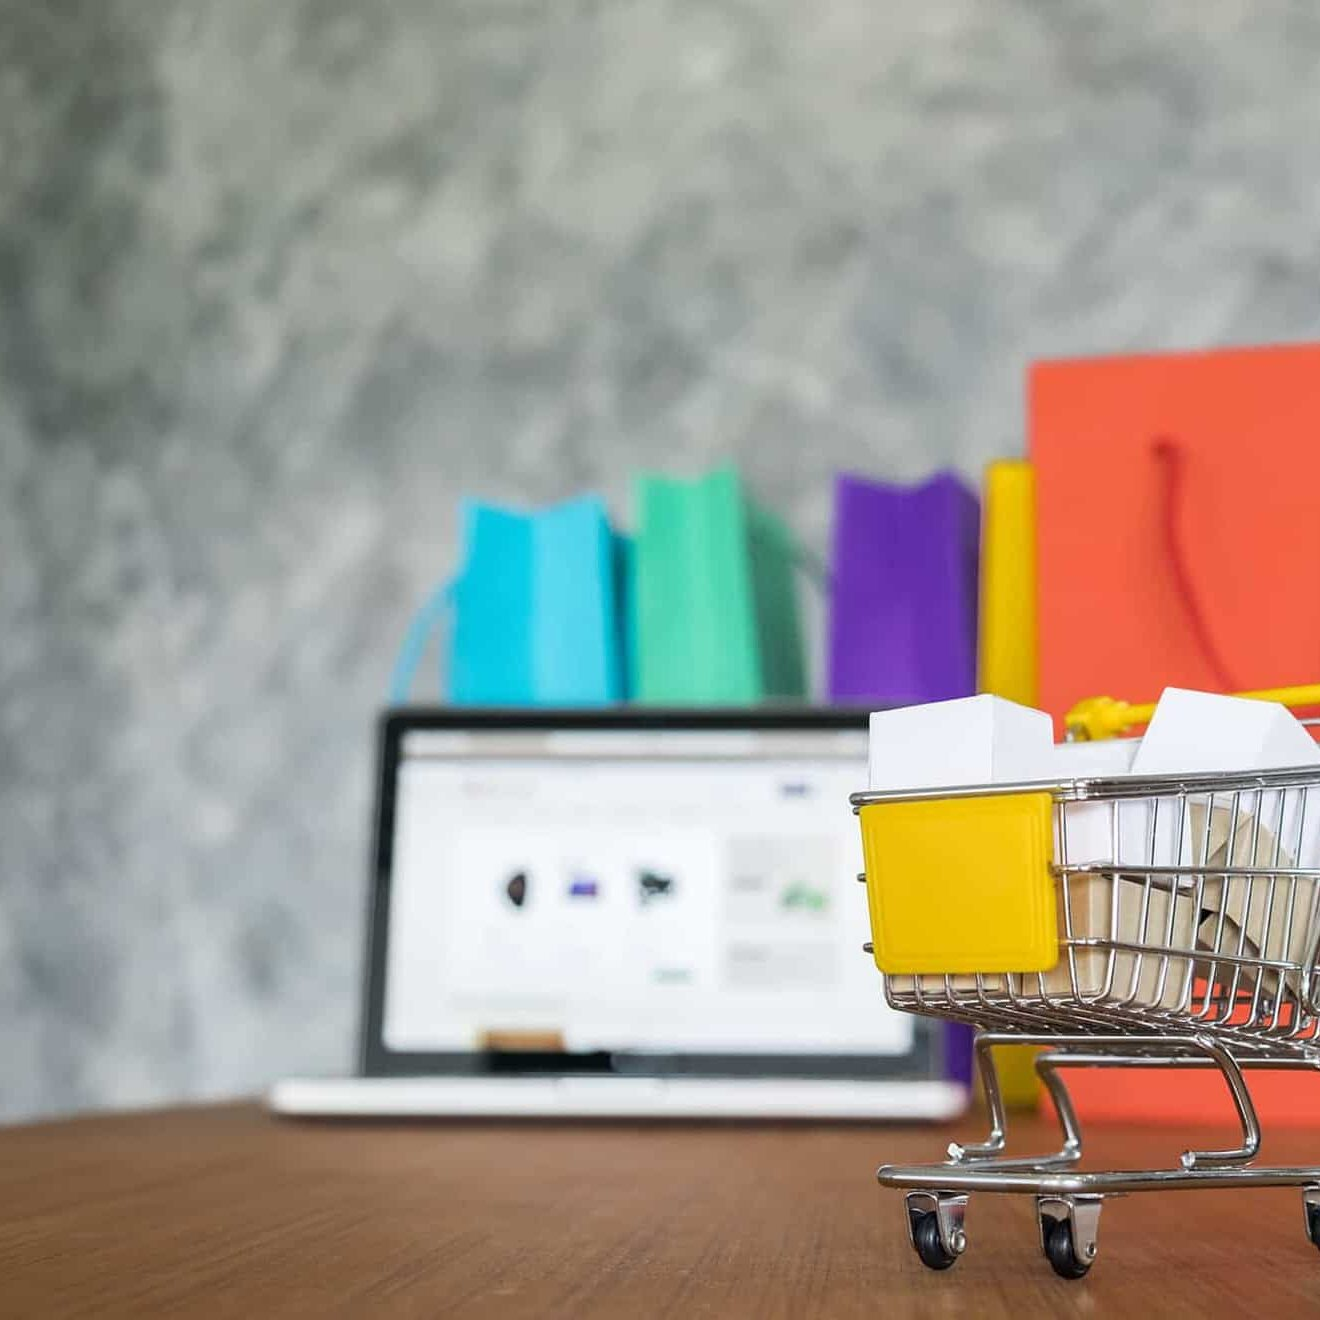 laptop and shopping bags, online shopping concept.